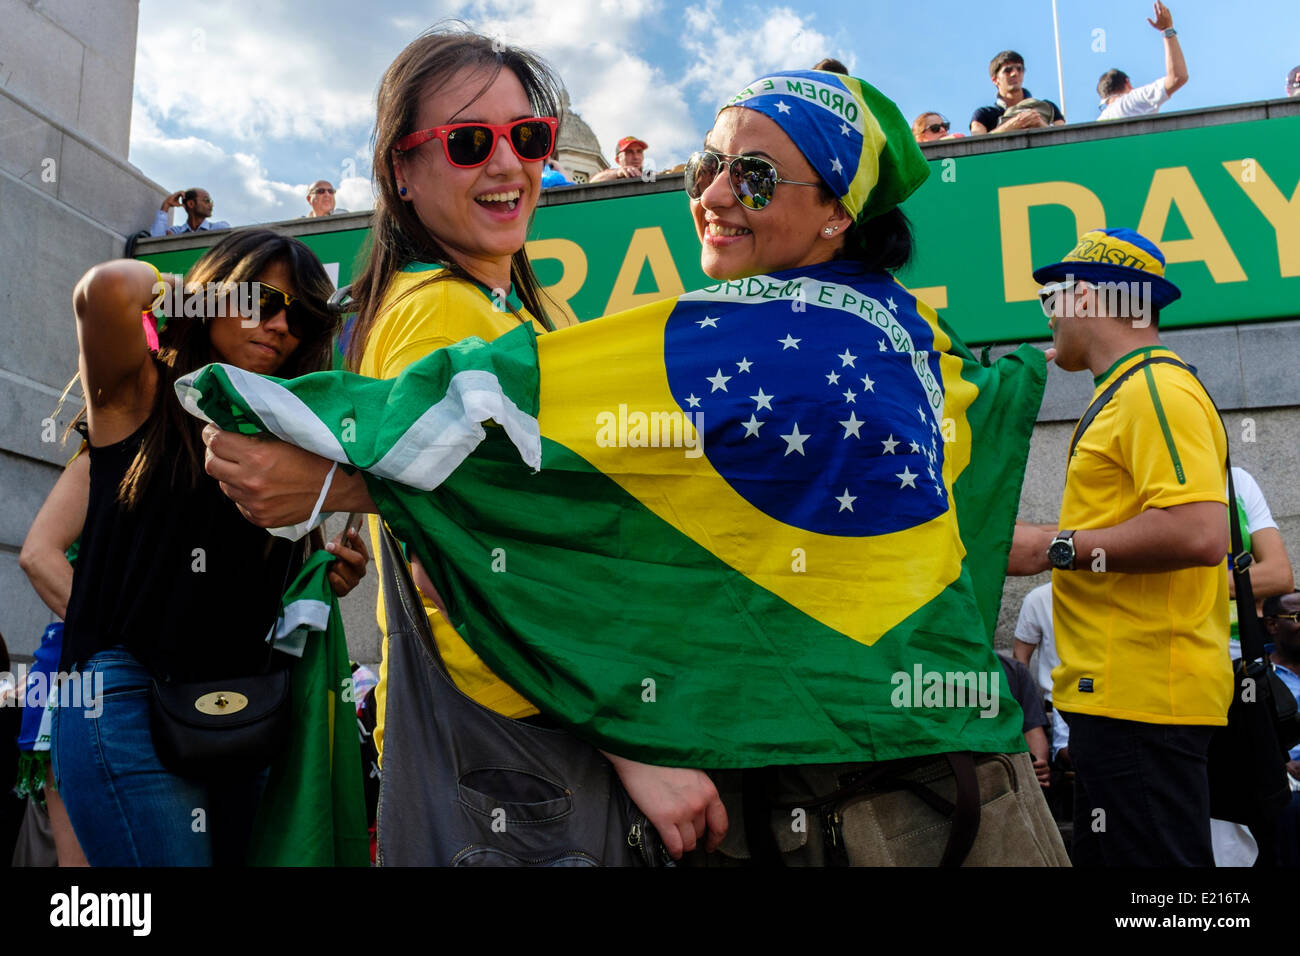 Two young women drape themselves in the Brazilian flag during Brazil Day celebrations in Trafalgar Square, London - Stock Image